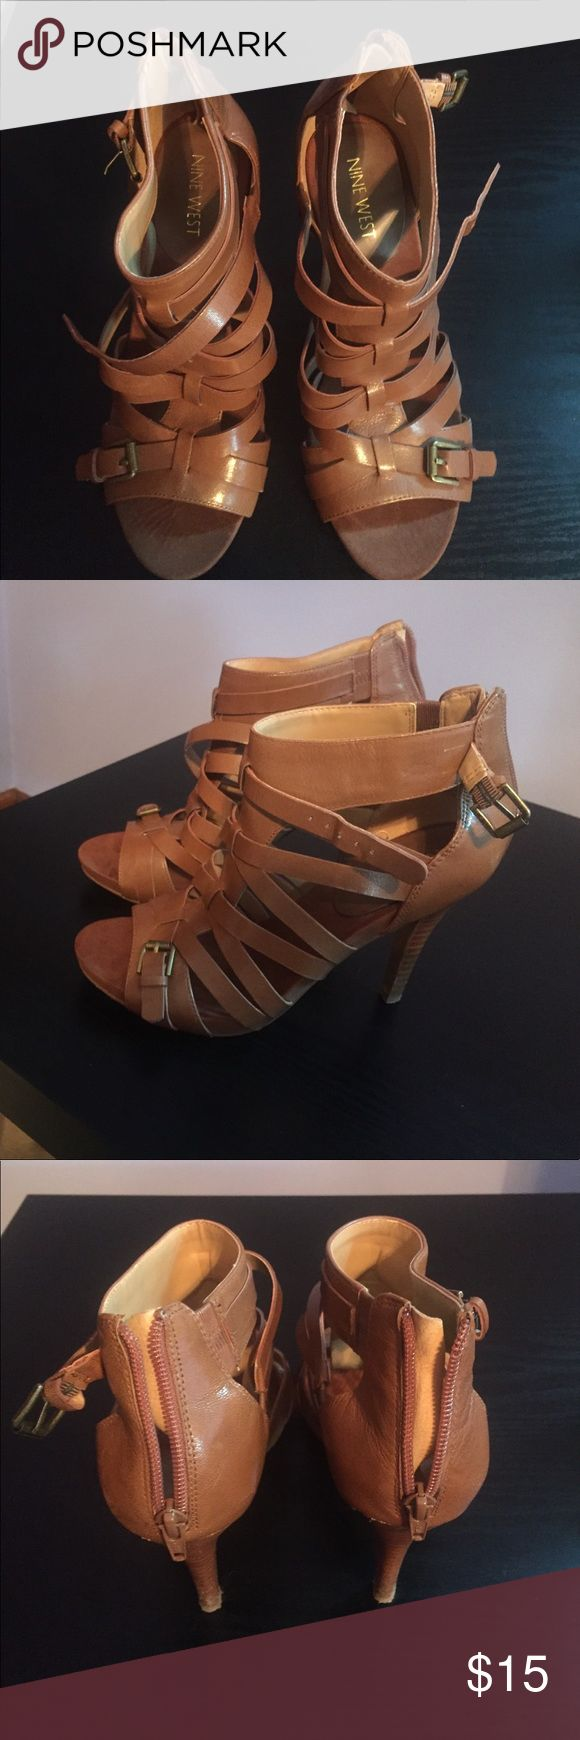 Nine West tan strappy heels 6.5 Sassy Nine West strappy peep toe pumps with zipper back. In very good condition besides some wear and tear on the sole. Worn only once to an outdoor wedding. Nine West Shoes Heels